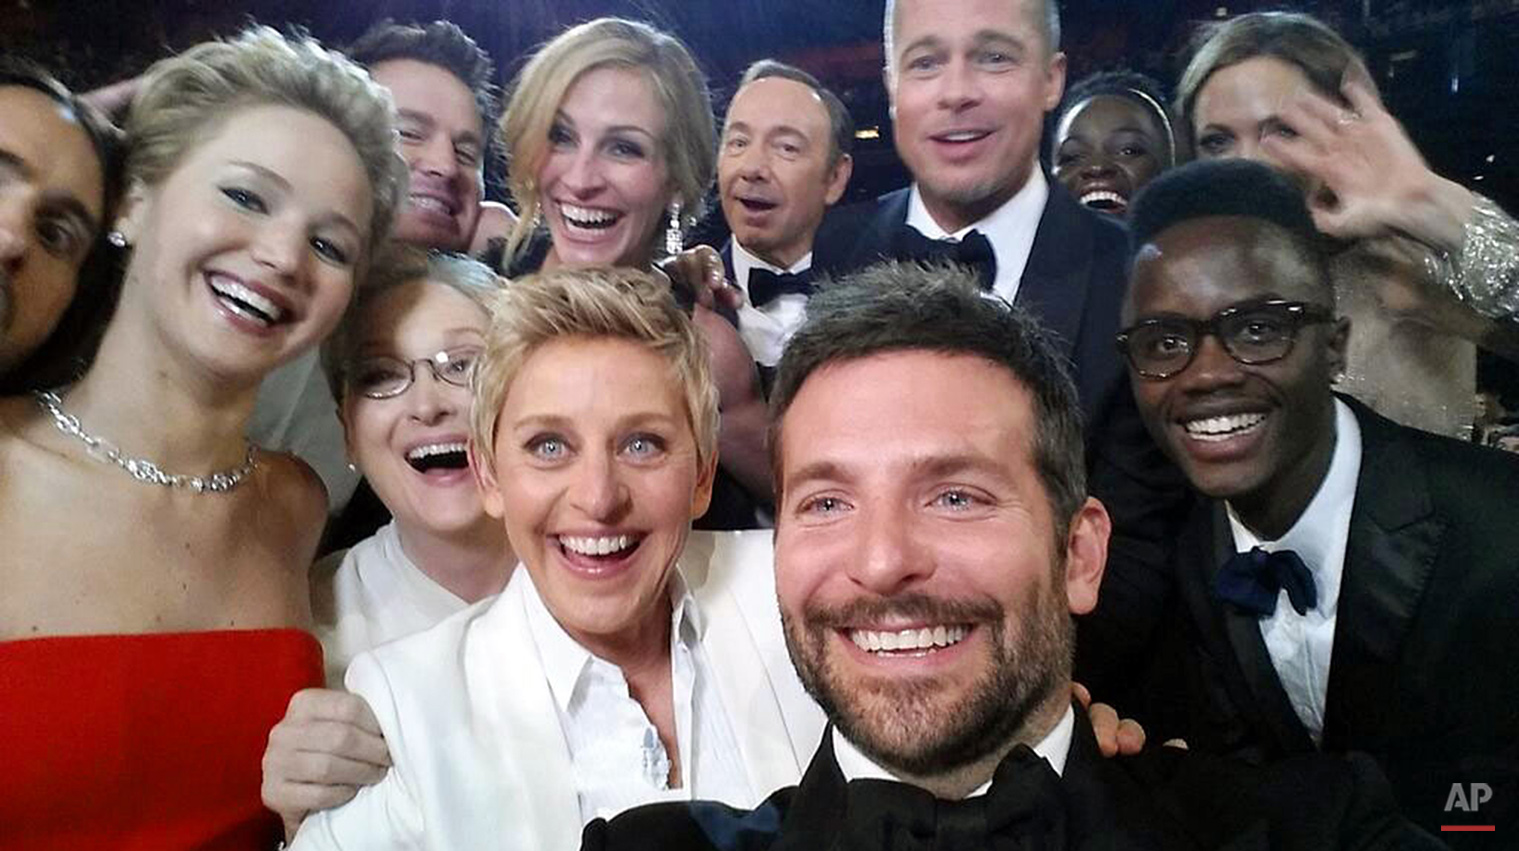 "This image released by Ellen DeGeneres shows actors, front row from left, Jared Leto, Jennifer Lawrence, Meryl Streep, Ellen DeGeneres, Bradley Cooper, Peter Nyong'o Jr. and, second row, from left, Channing Tatum, Julia Roberts, Kevin Spacey, Brad Pitt, Lupita Nyong'o and Angelina Jolie as they pose for a ""selfie"" portrait on a cell phone during the Oscars at the Dolby Theatre on Sunday, March 2, 2014, in Los Angeles. (AP Photo/Ellen DeGeneres)"